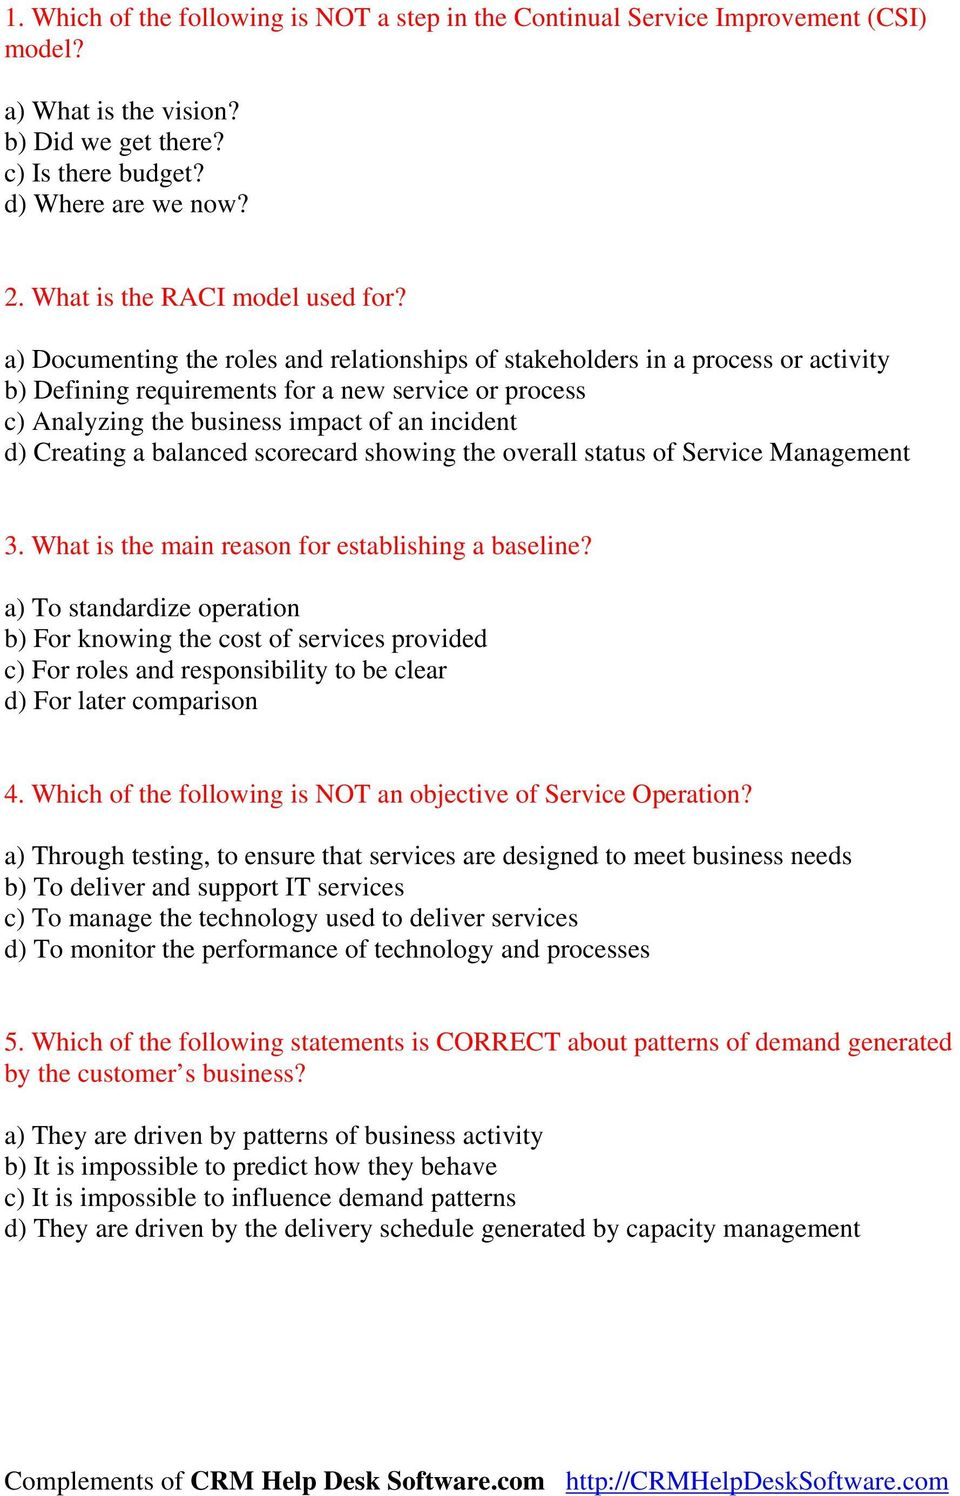 Itil Service Transition Sample Exam Questions